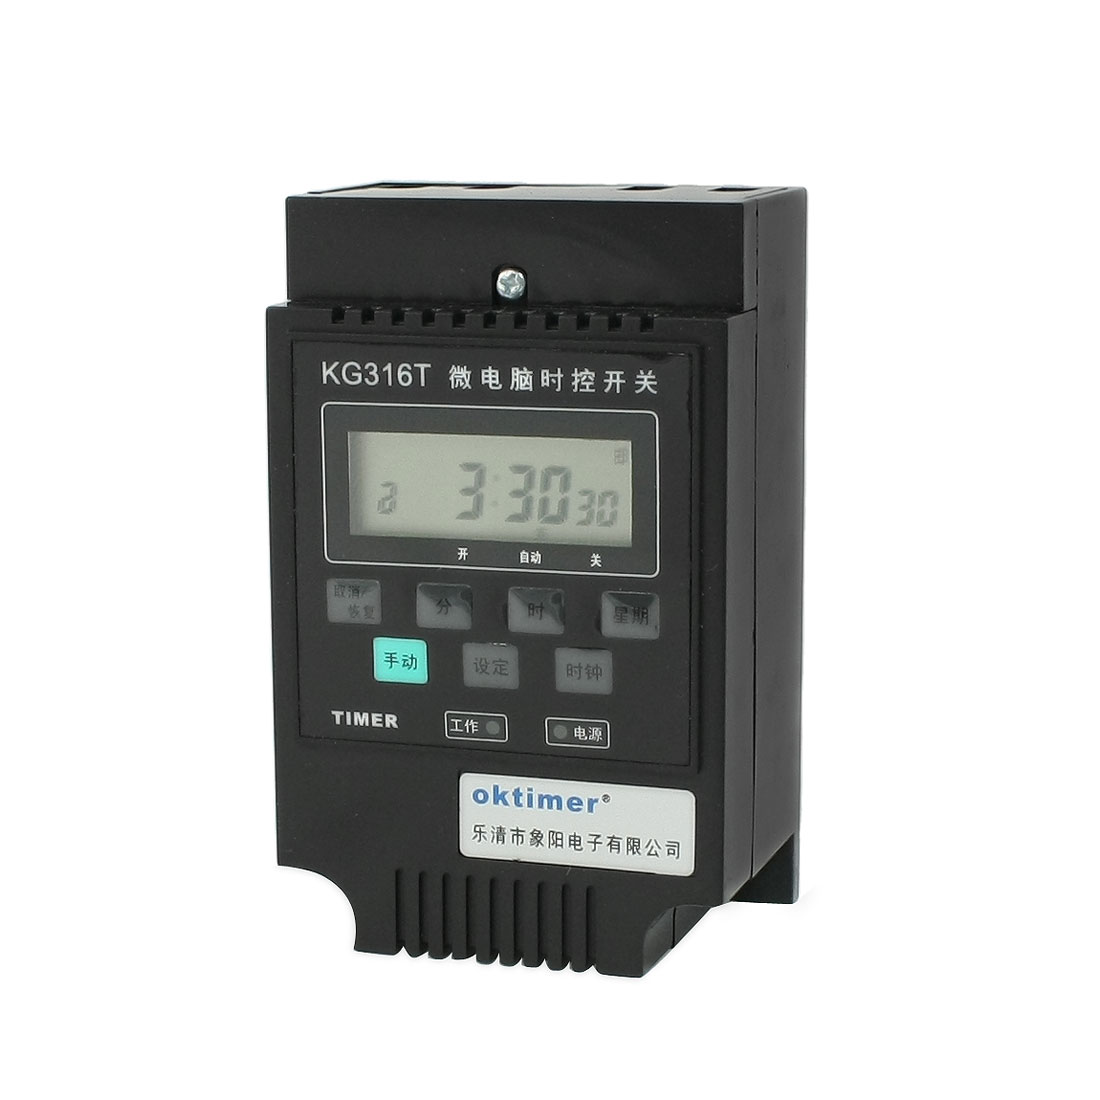 KG316T-16B 220VAC LCD Display Microcomputer Programmable Timer Controller Switch